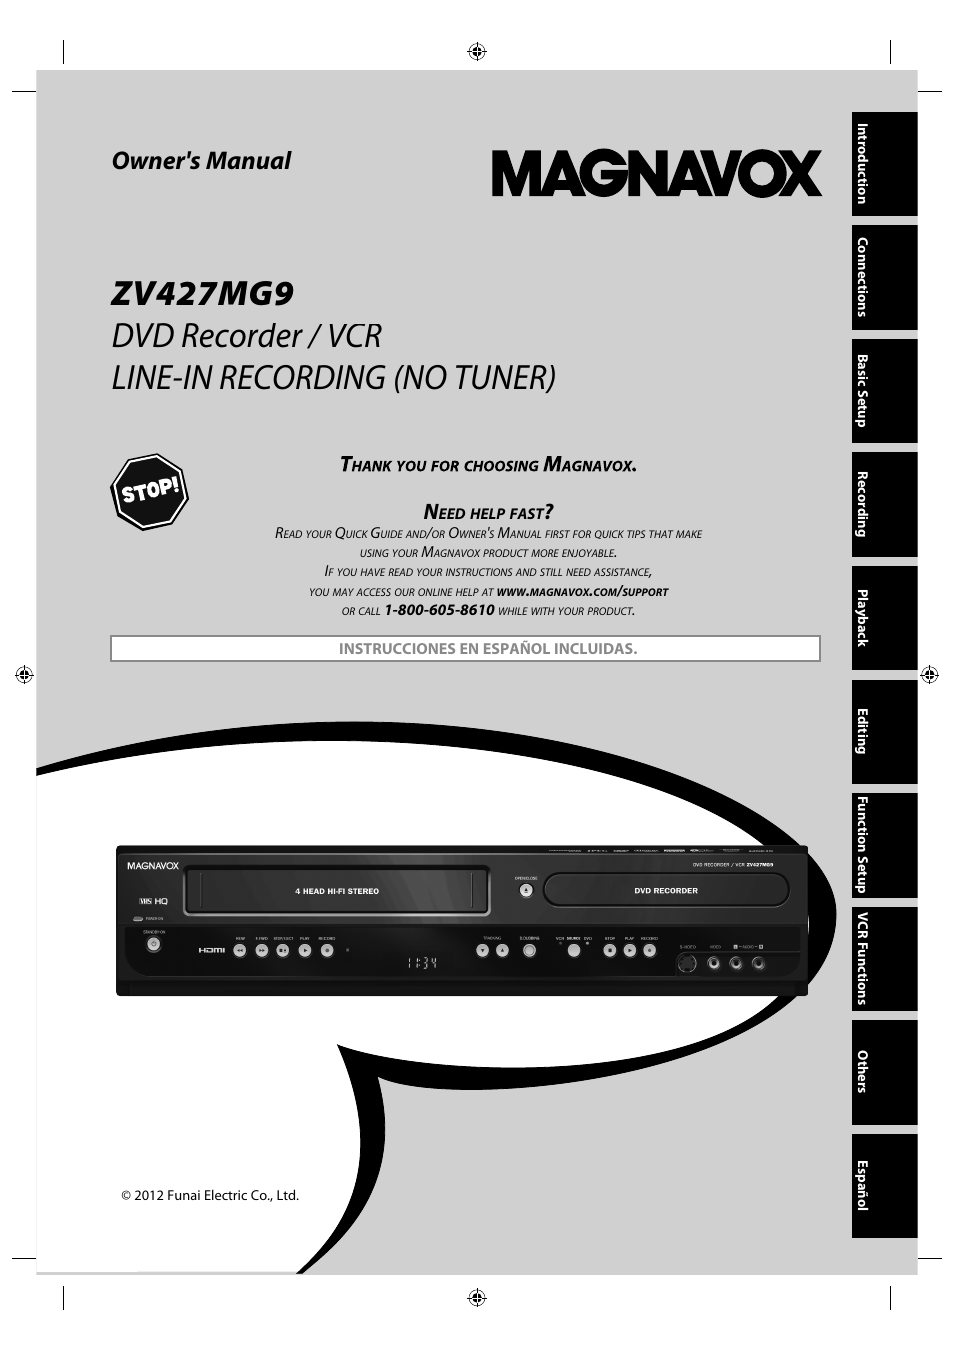 philips magnavox zv427mg9 user manual 98 pages rh manualsdir com magnavox zv427mg9 service manual magnavox zv427mg9a service manual